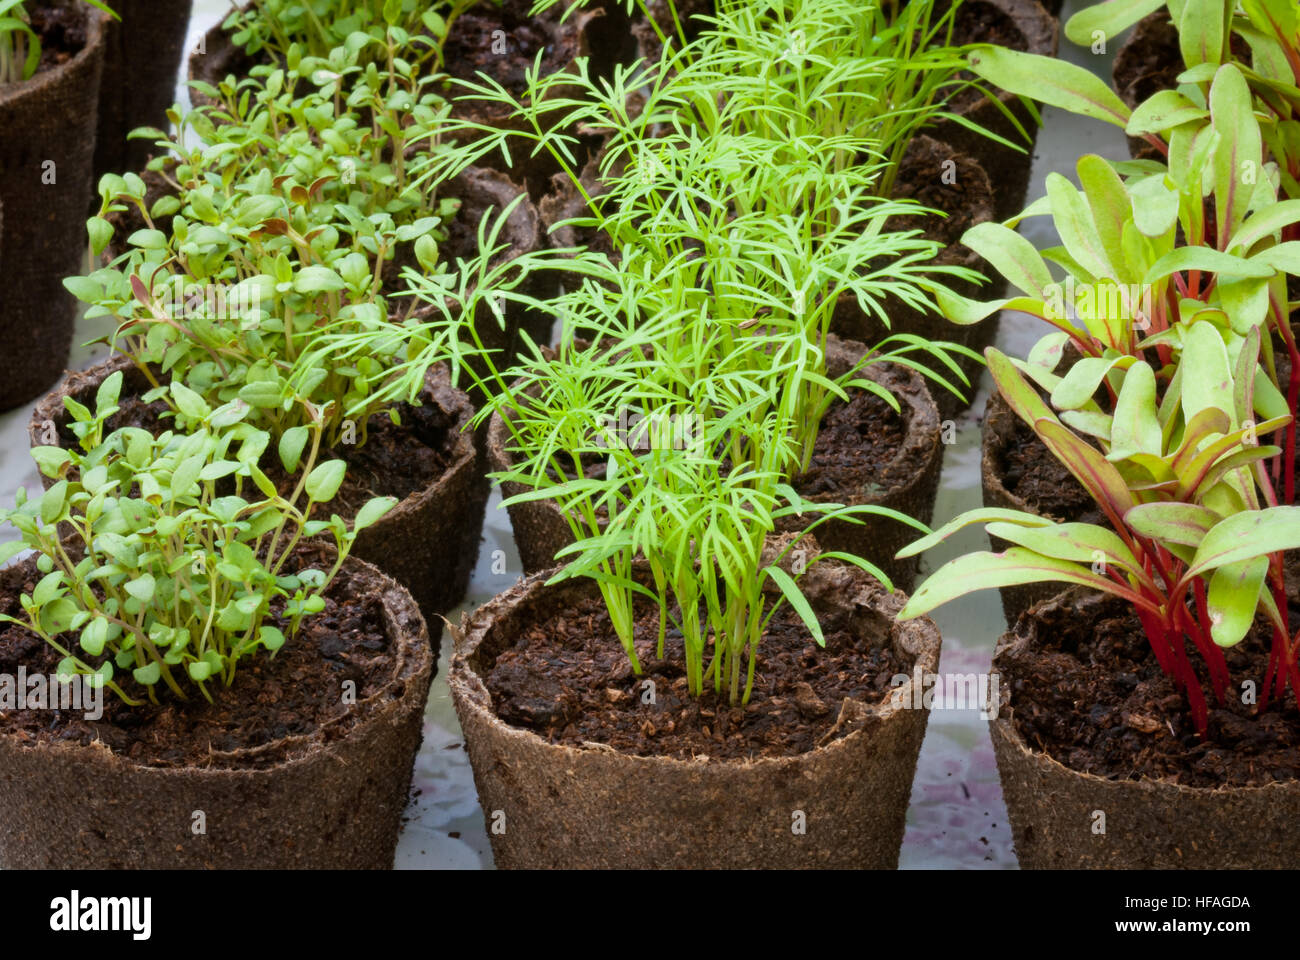 Herb & vegetable seedlings in peat pots, thyme, chard, dill, started from seeds - Stock Image